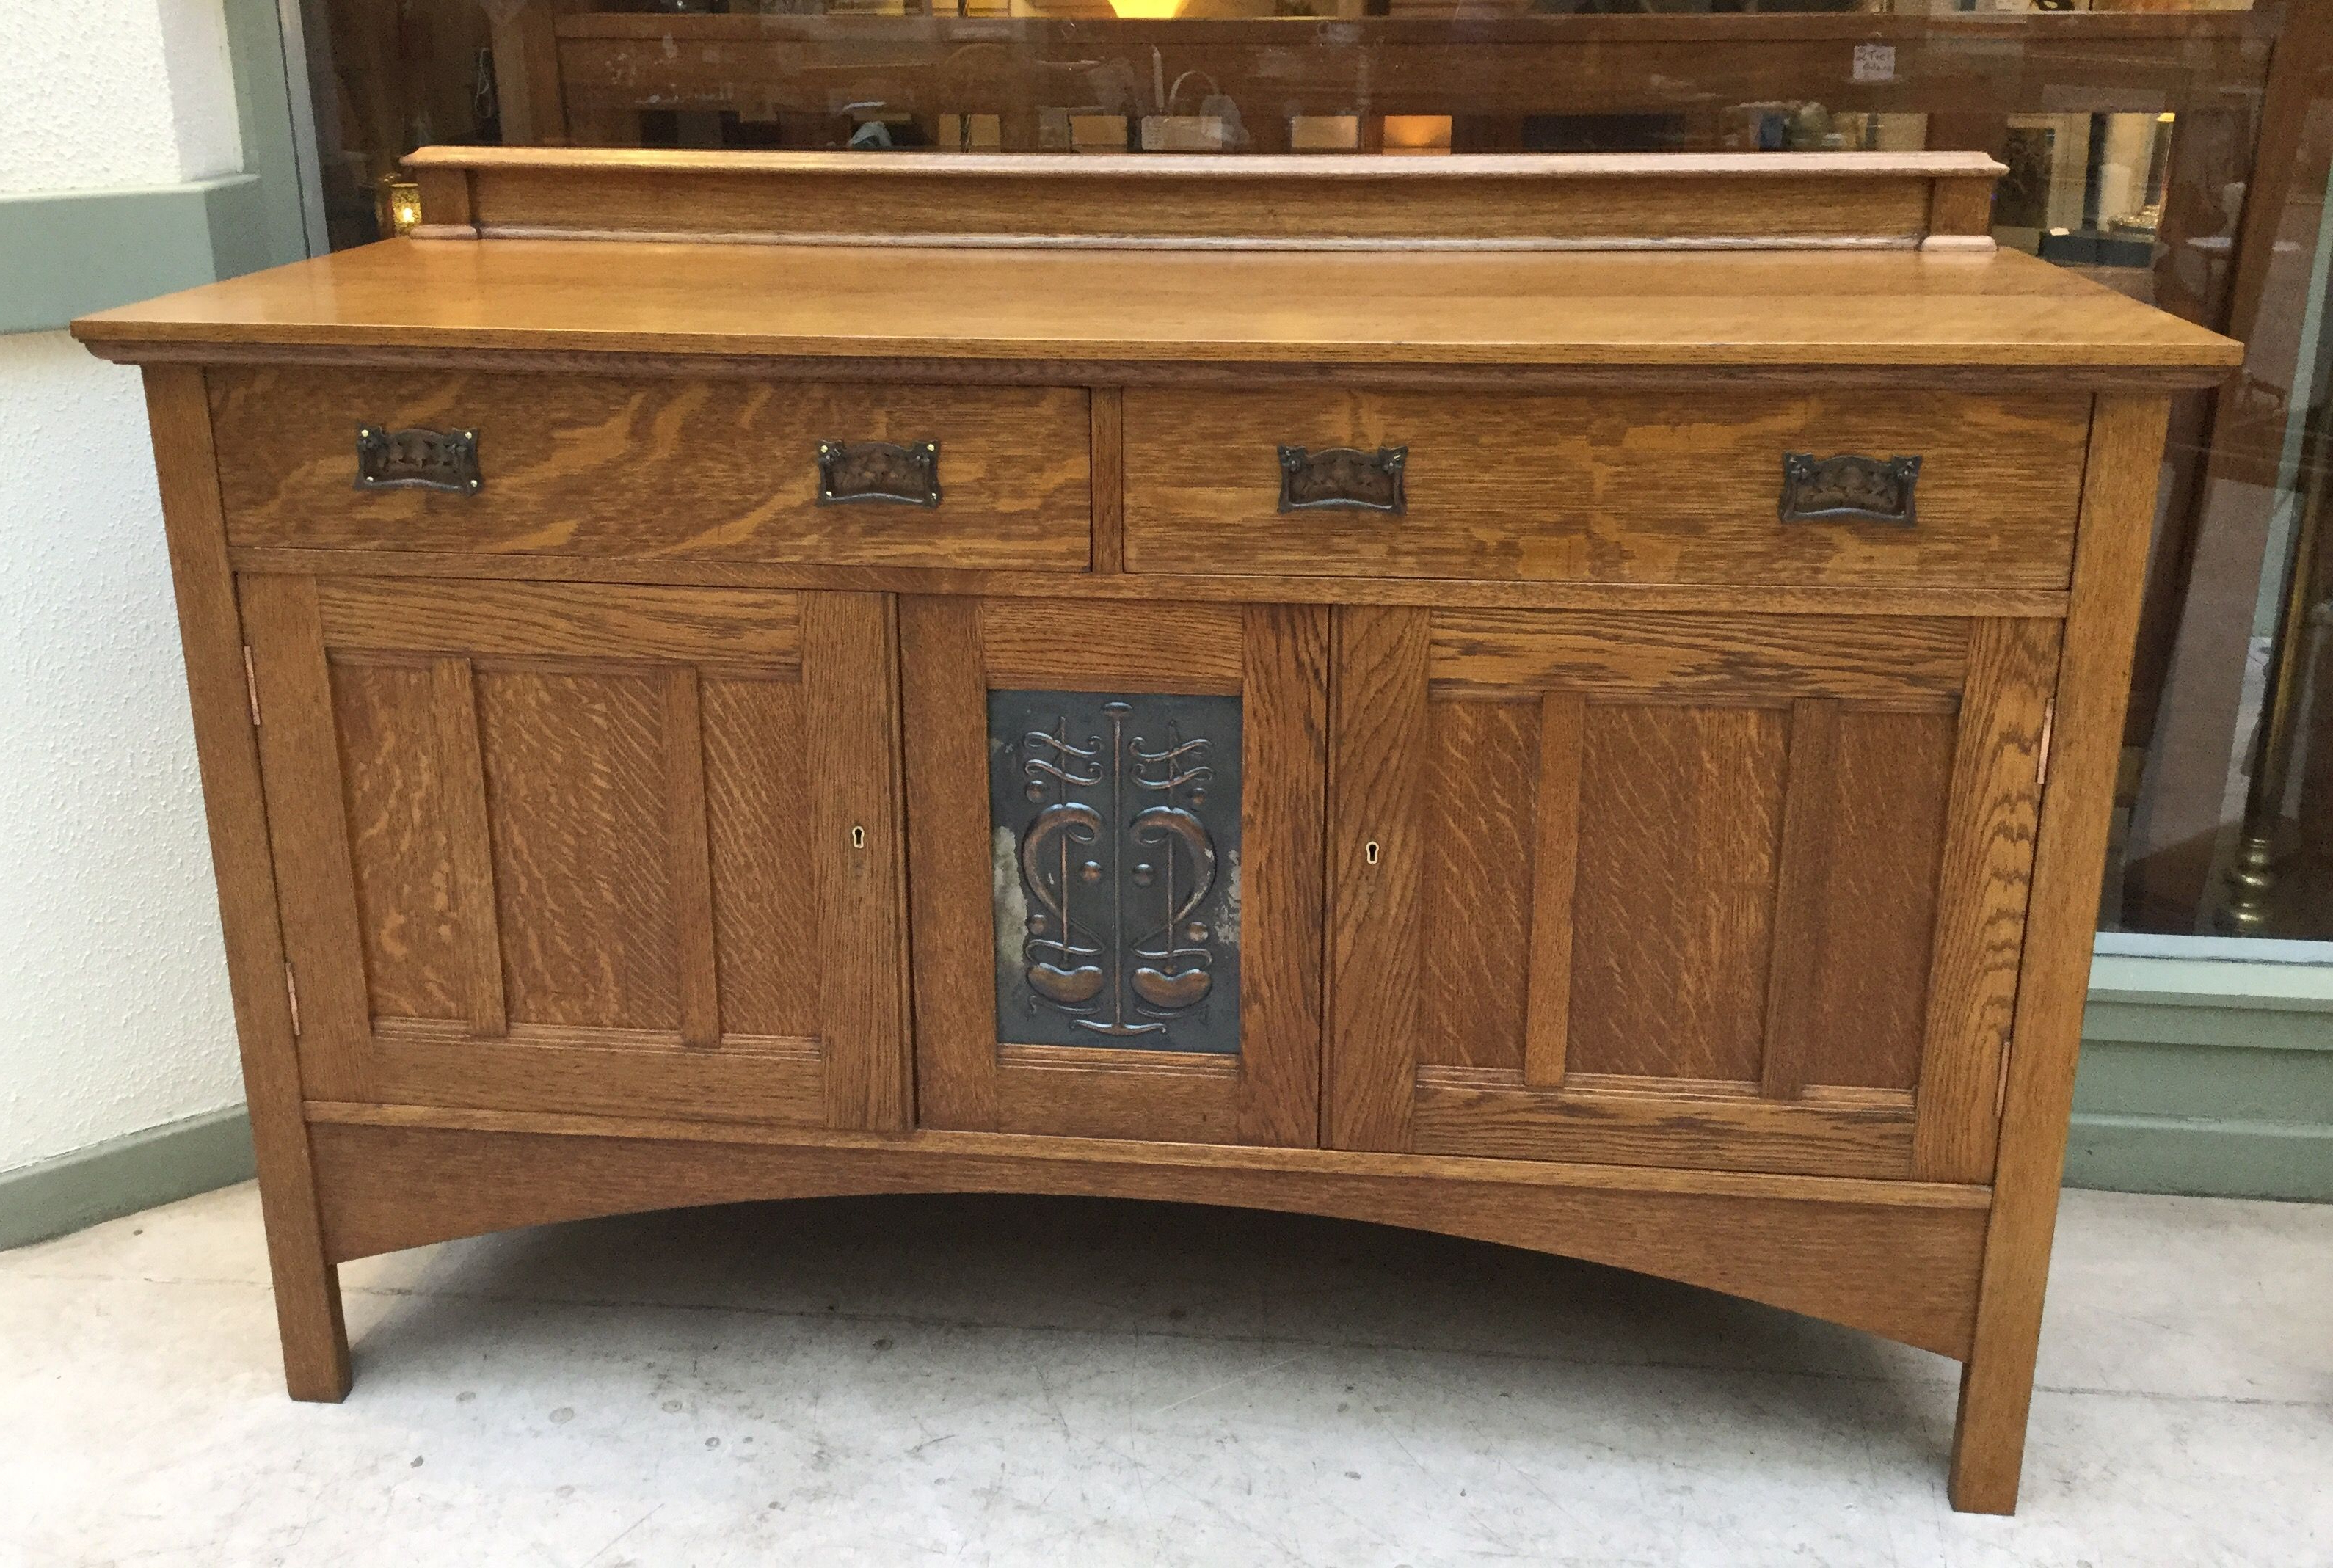 Oak Sideboard, With Original Beaten Copper Panel | Arts And Inside Ruskin Sideboards (View 3 of 20)